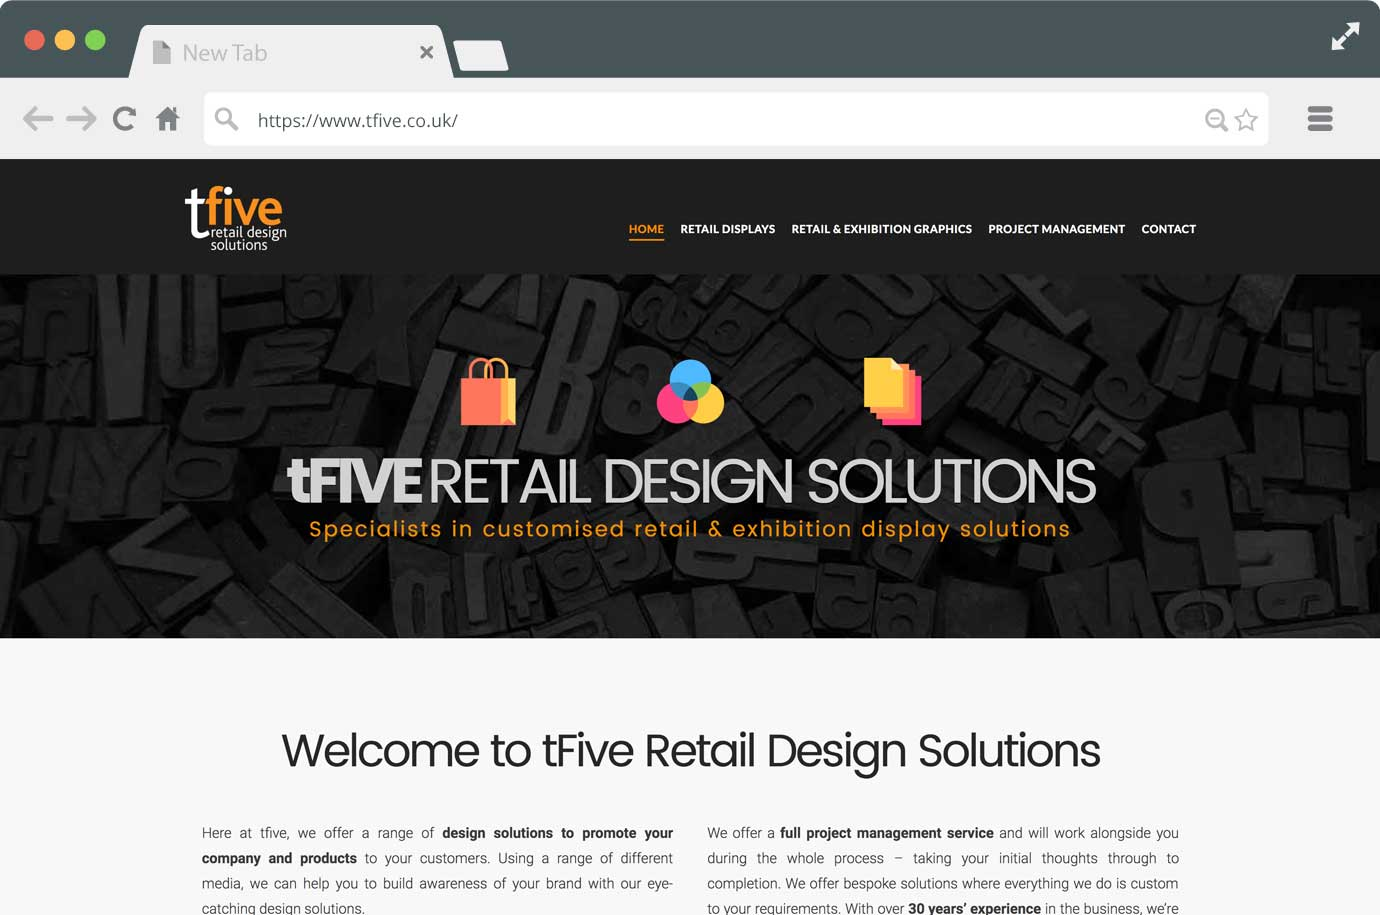 TFive Retail Design Solutions website